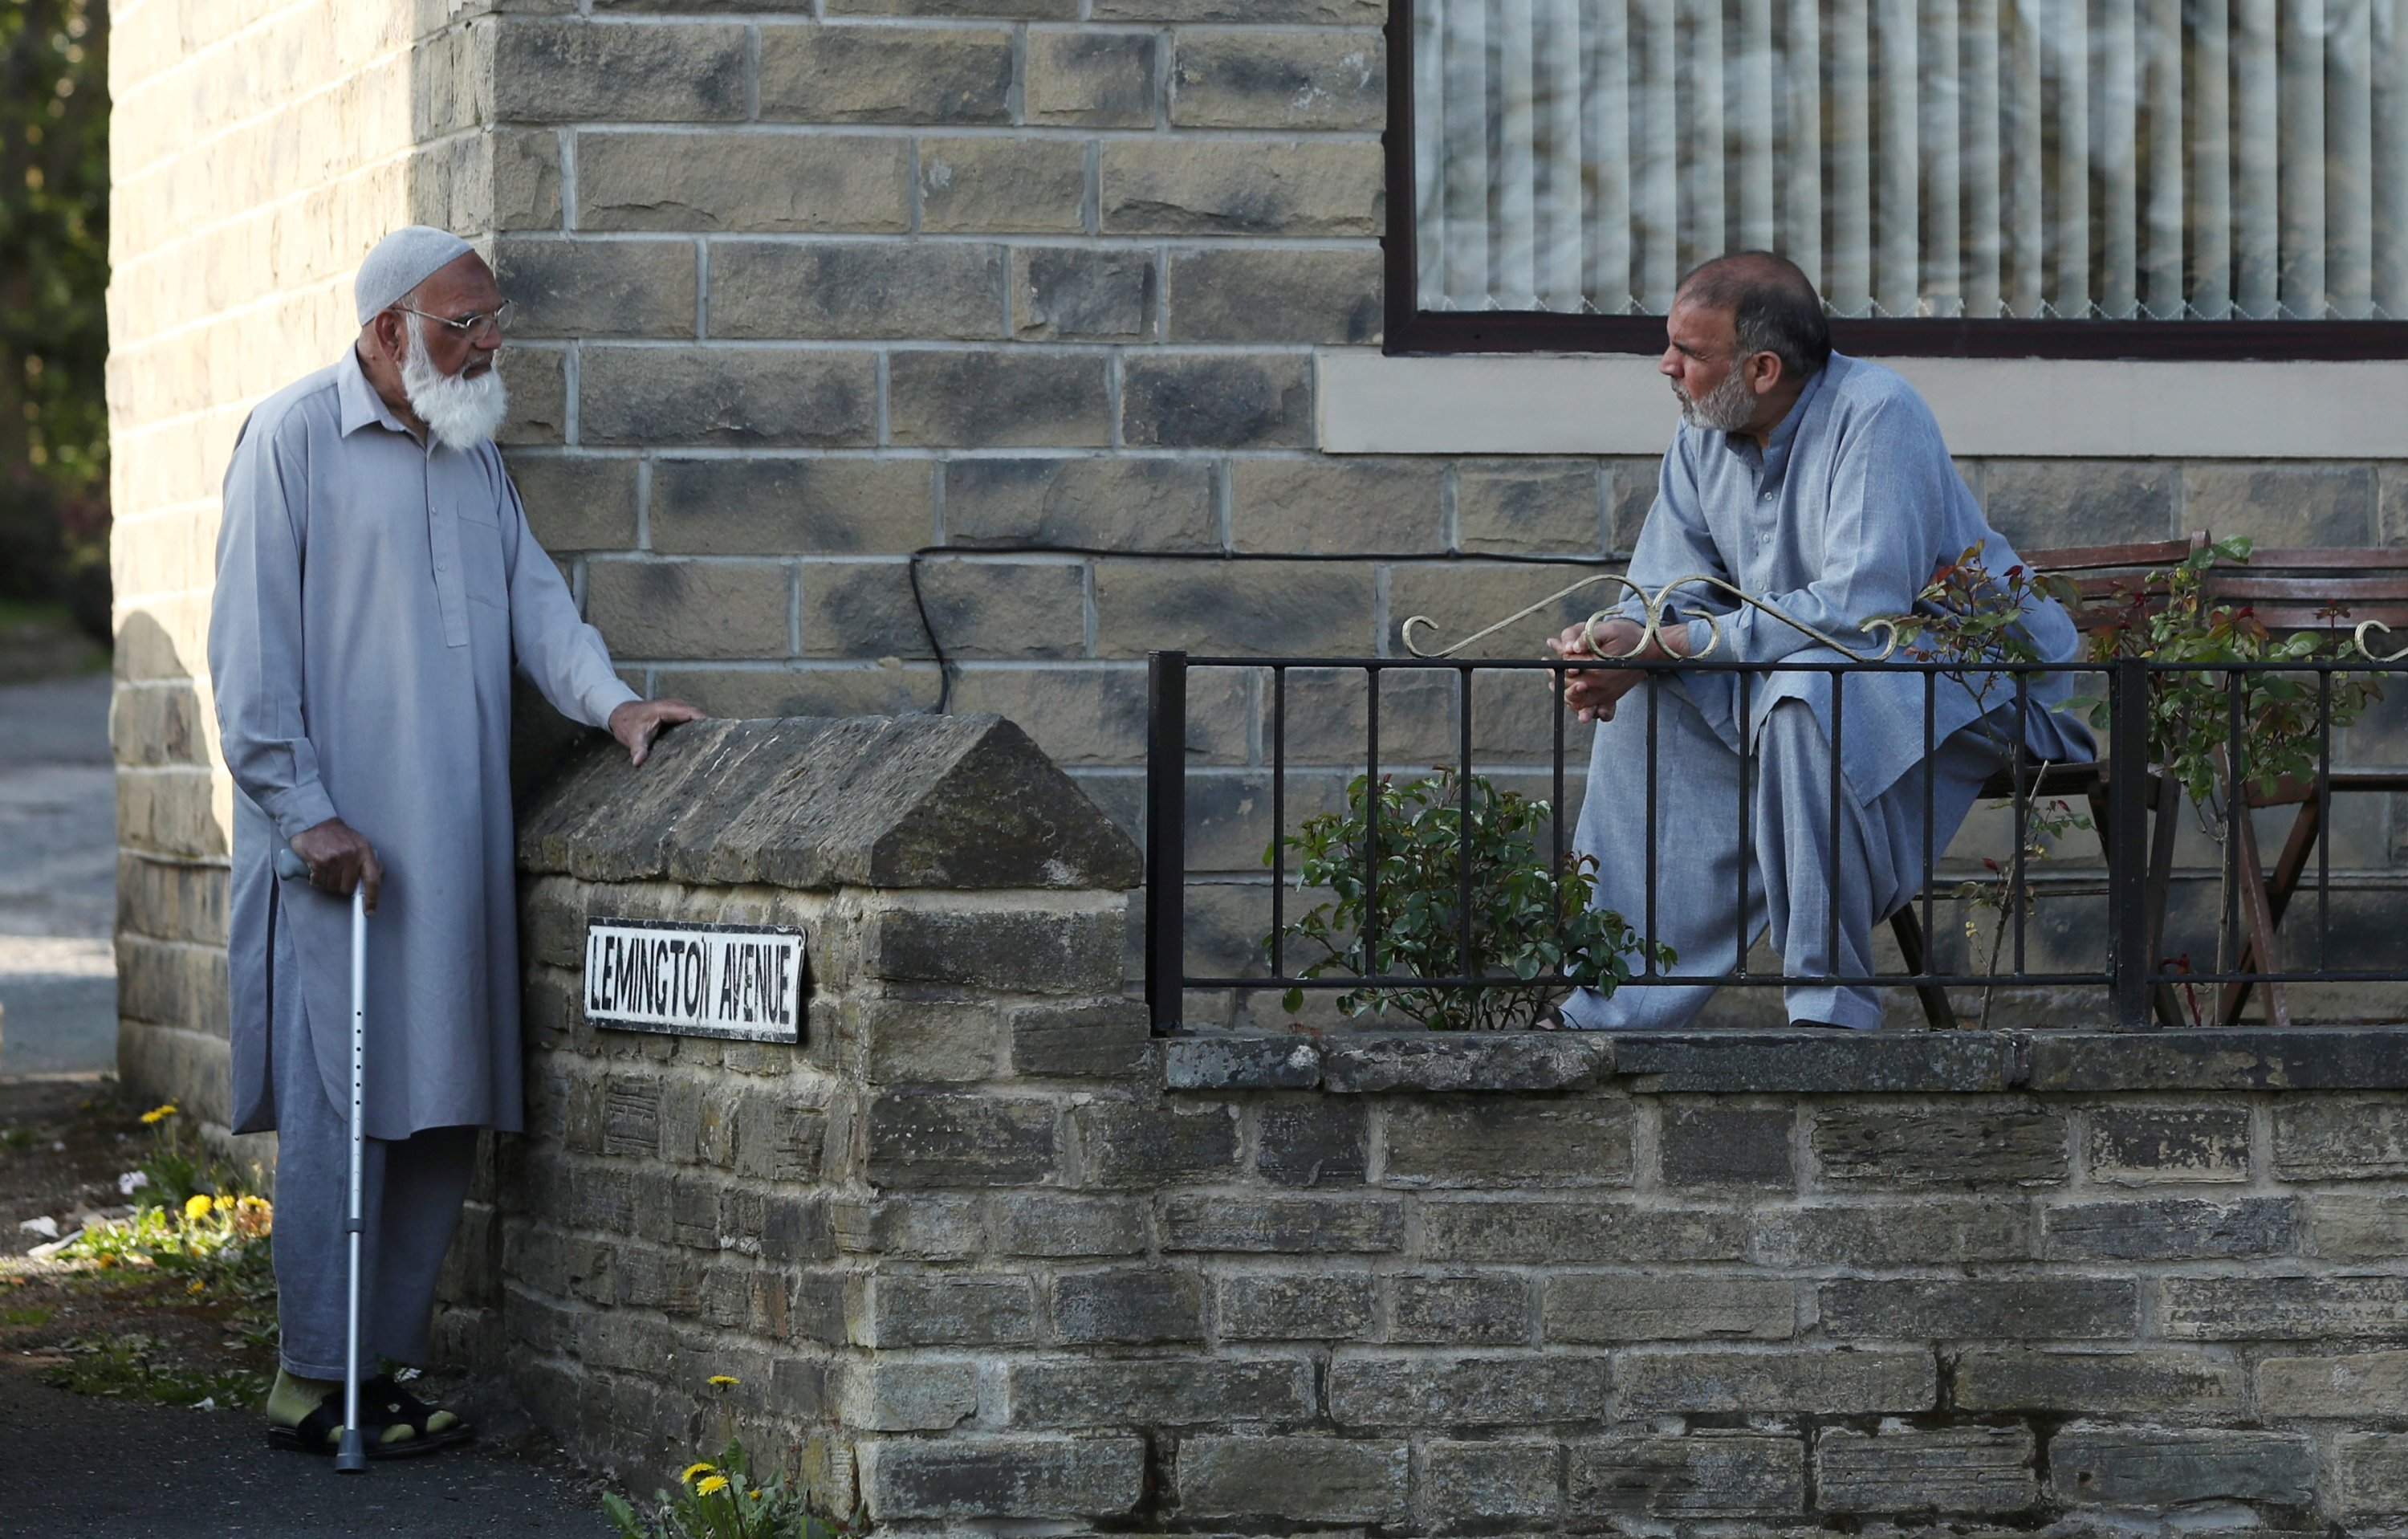 Two people chat while maintaining social distancing between them in Halifax, Britain, April 16, 2020. (REUTERS Photo=